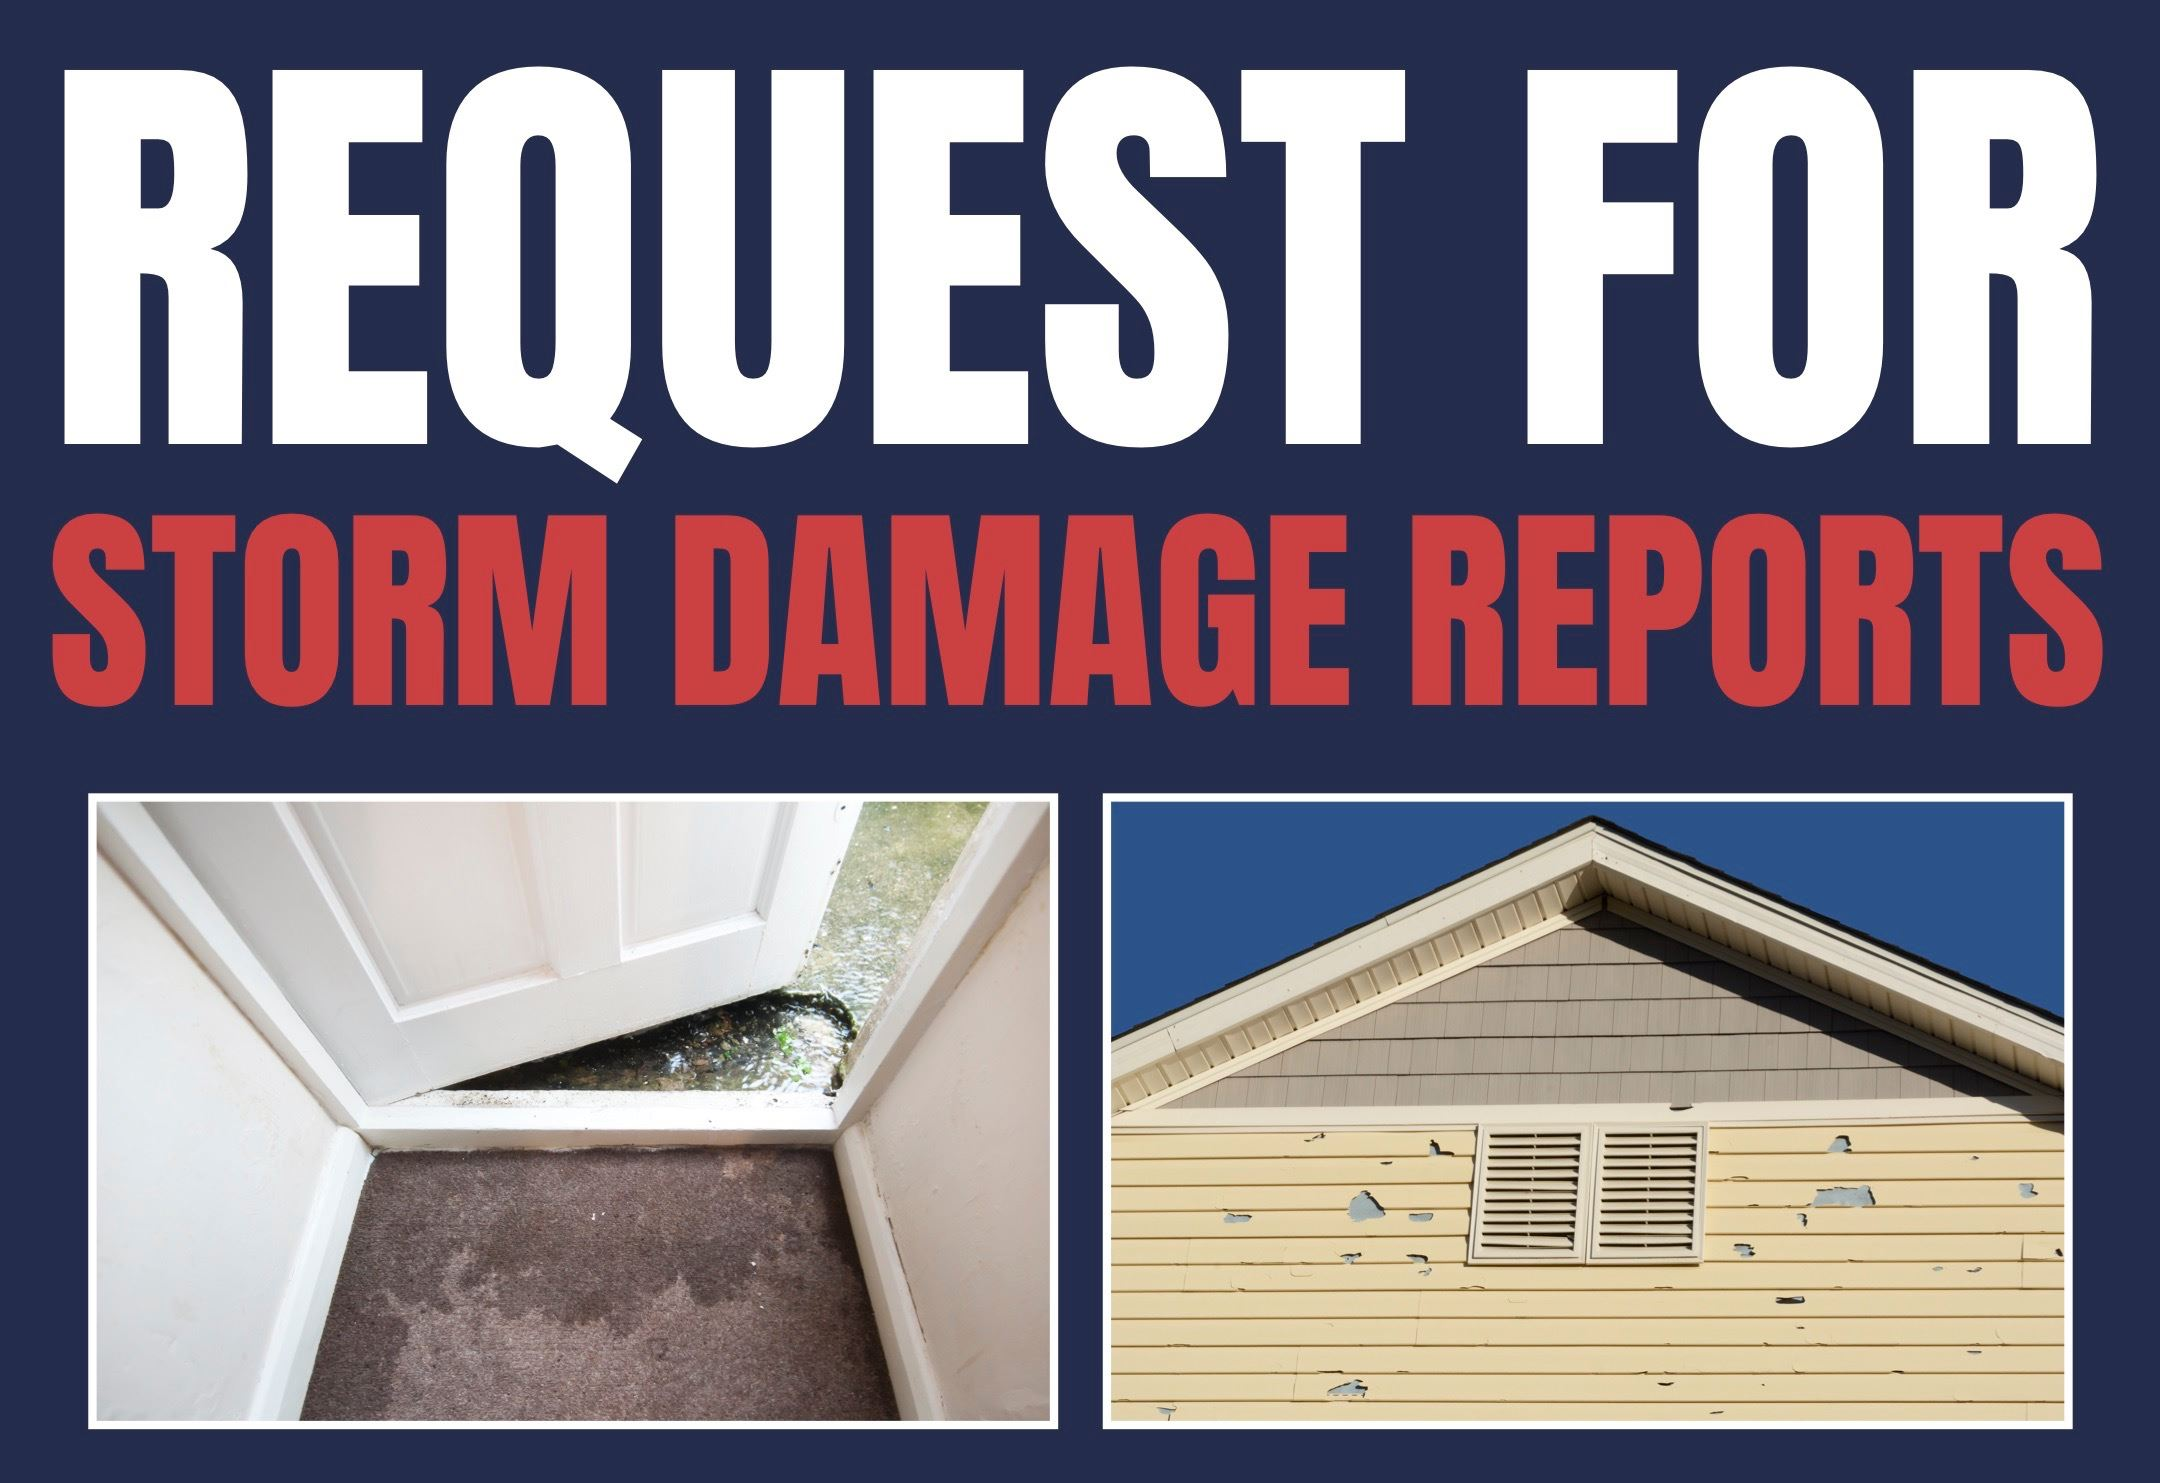 Request for Citizen Storm Damage Reports